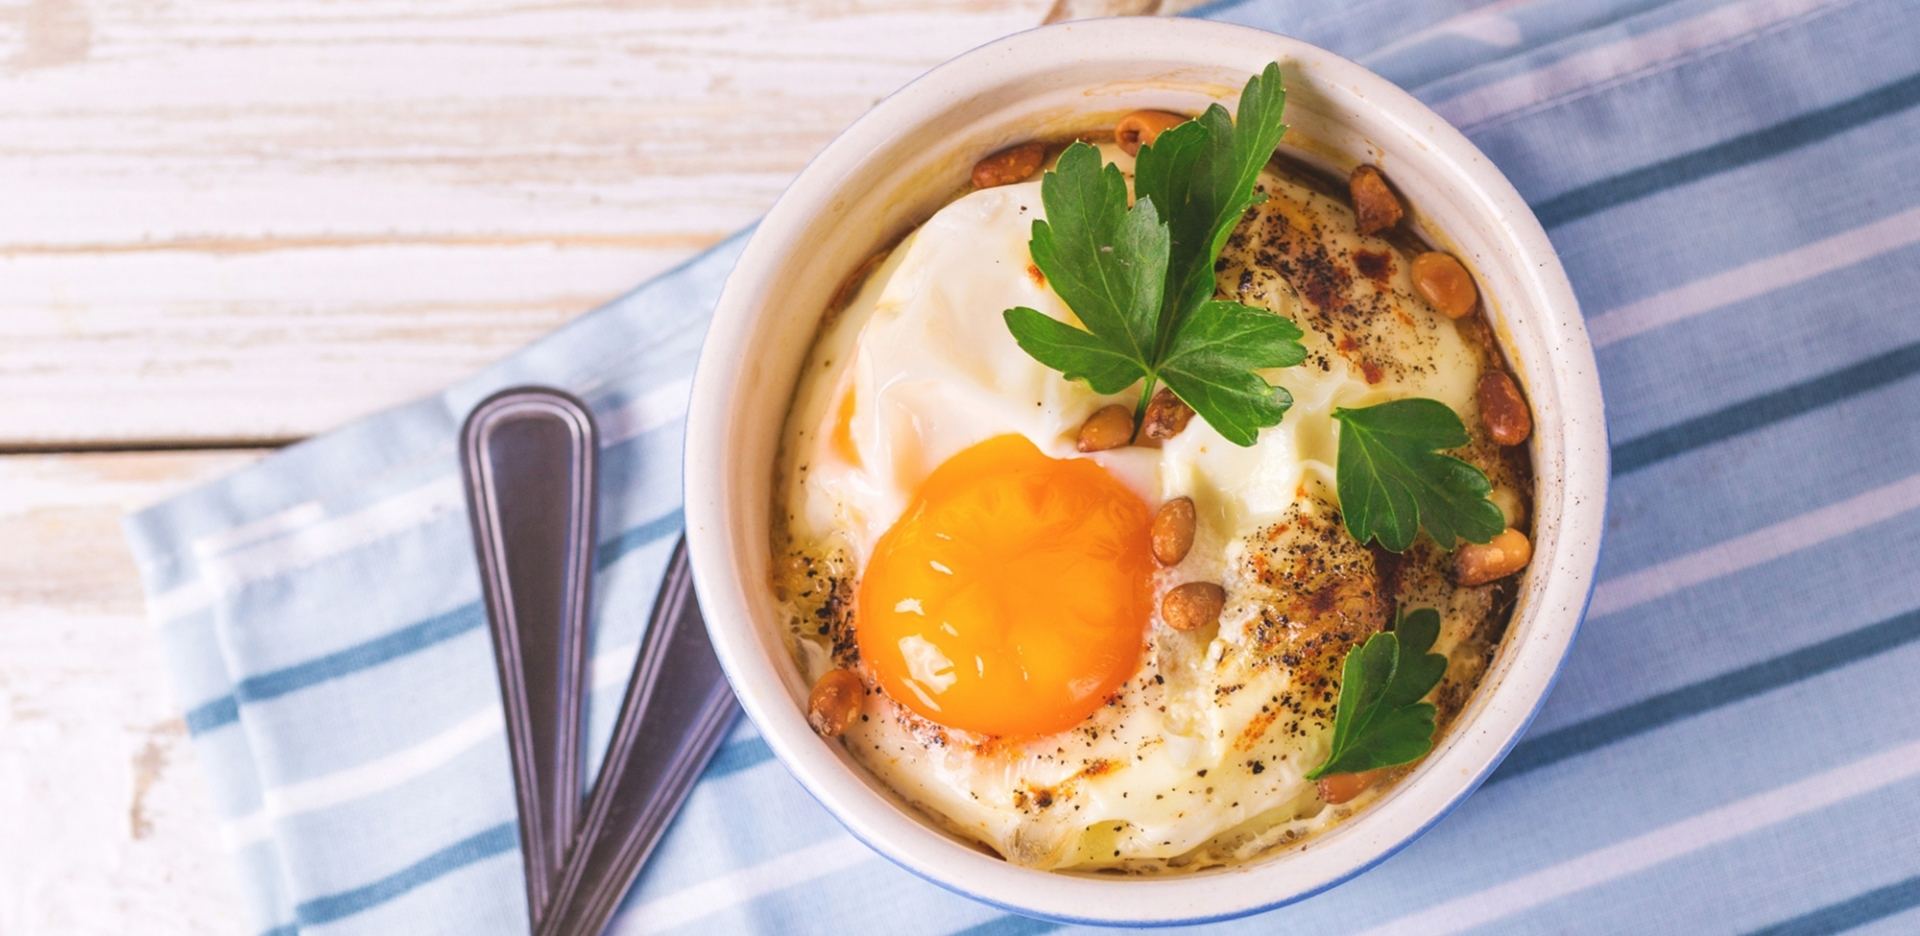 Cocotte Eggs with Kale and Corned Beef